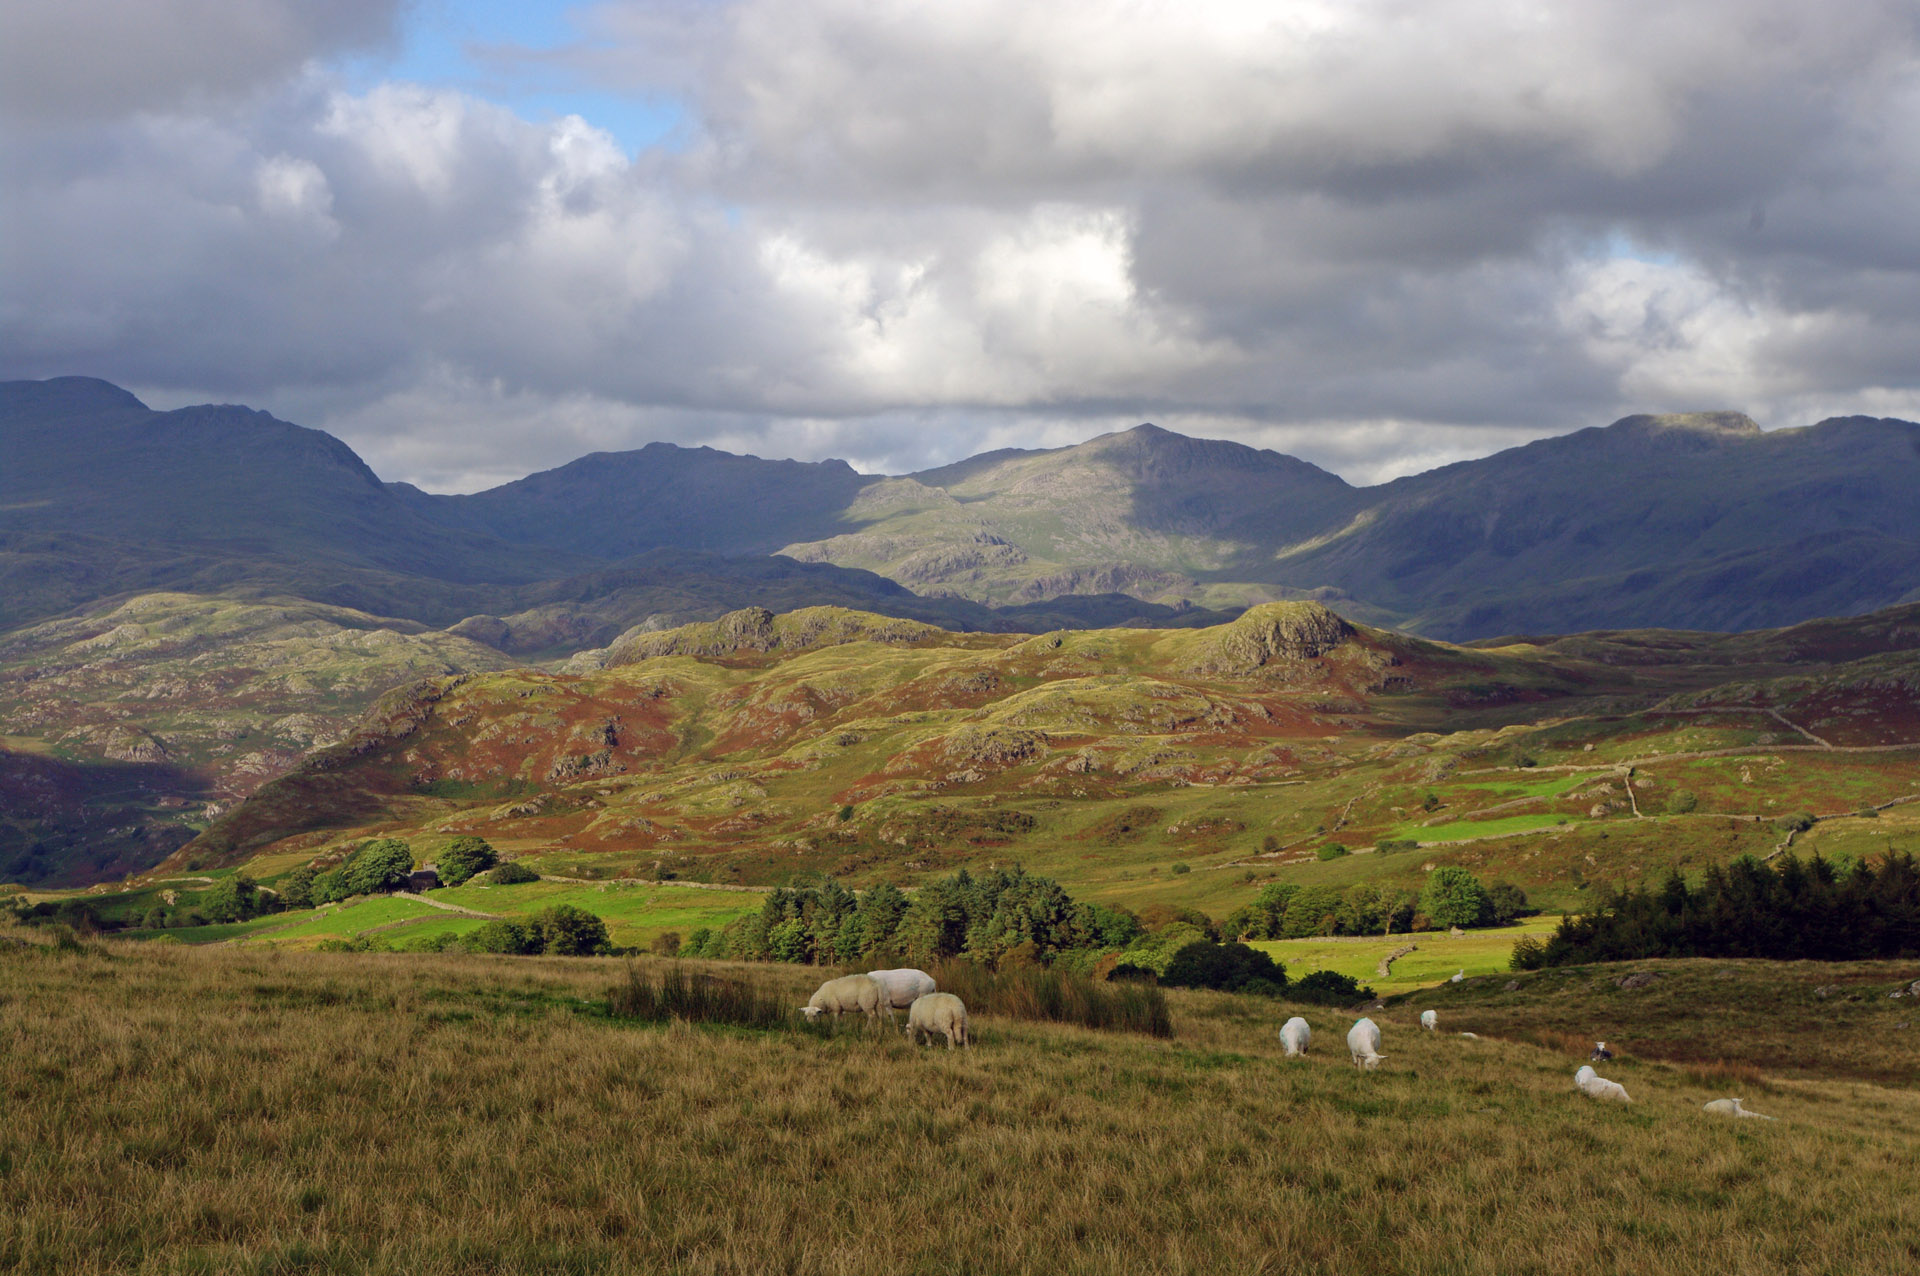 lake district land largely exposed rocky not productive enough arable crops sheep farming main use